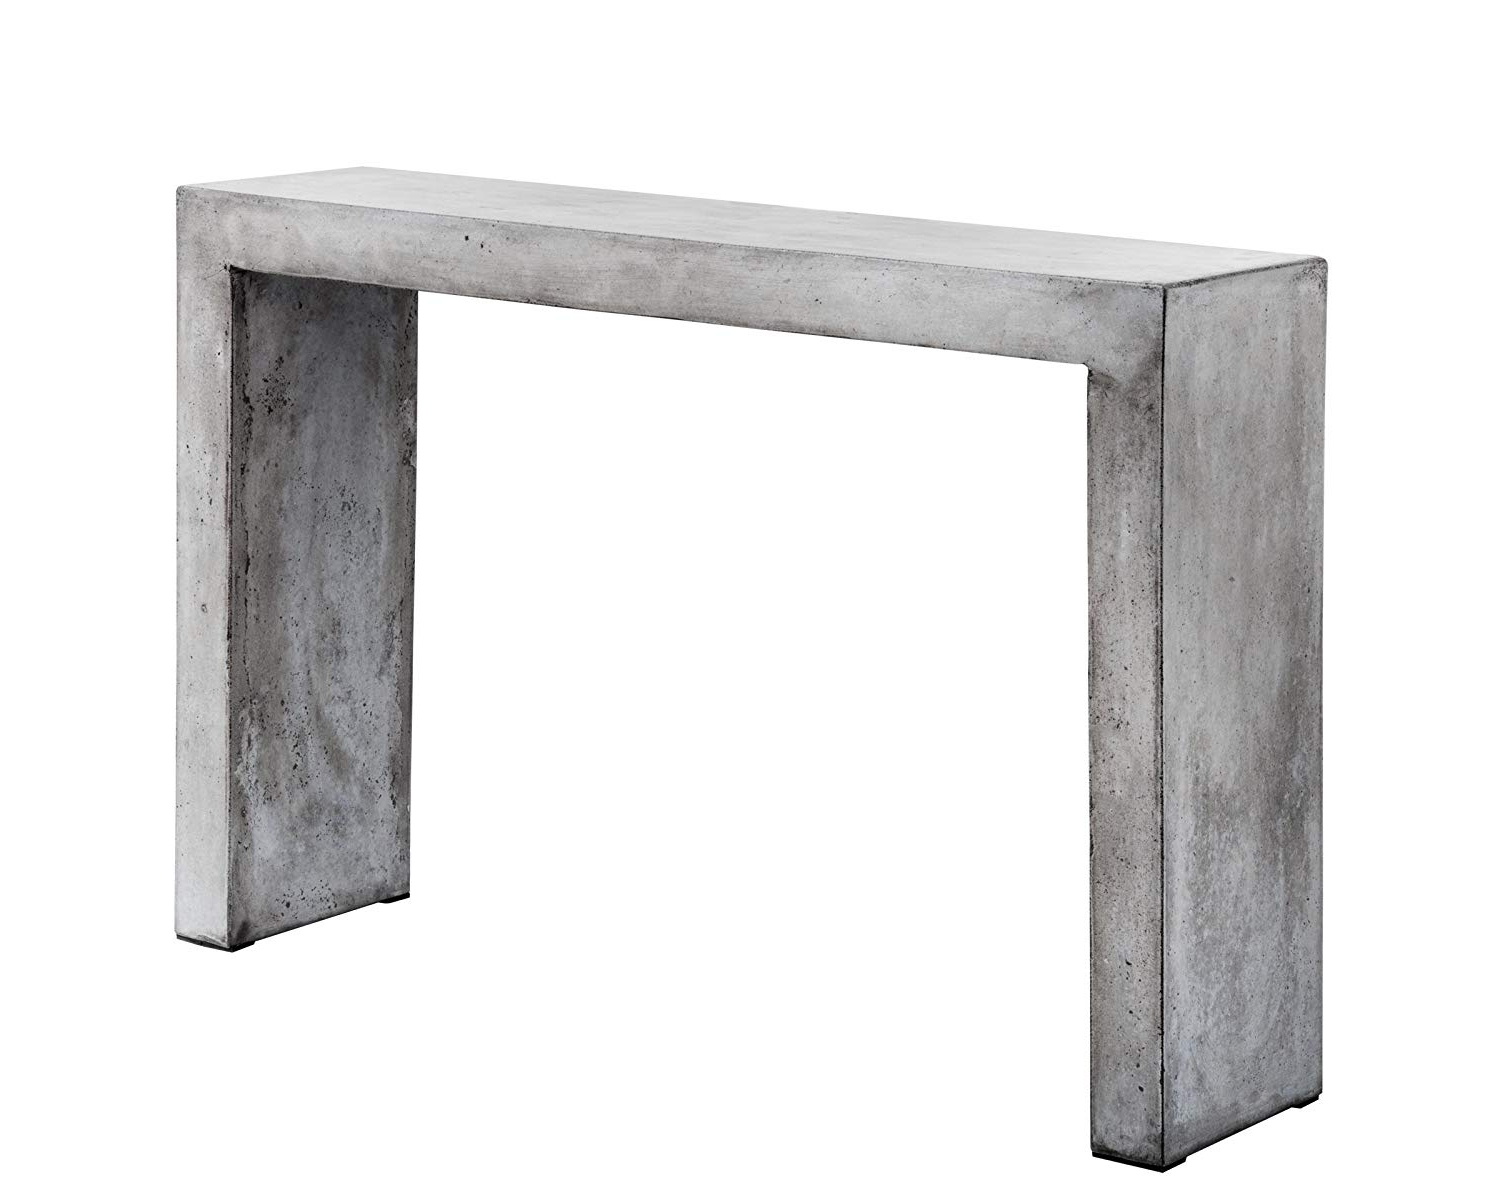 Parsons Concrete Top & Stainless Steel Base 48X16 Console Tables With Regard To Best And Newest Amazon: Sunpan Modern Axle Console Table, Grey: Kitchen & Dining (Gallery 4 of 20)